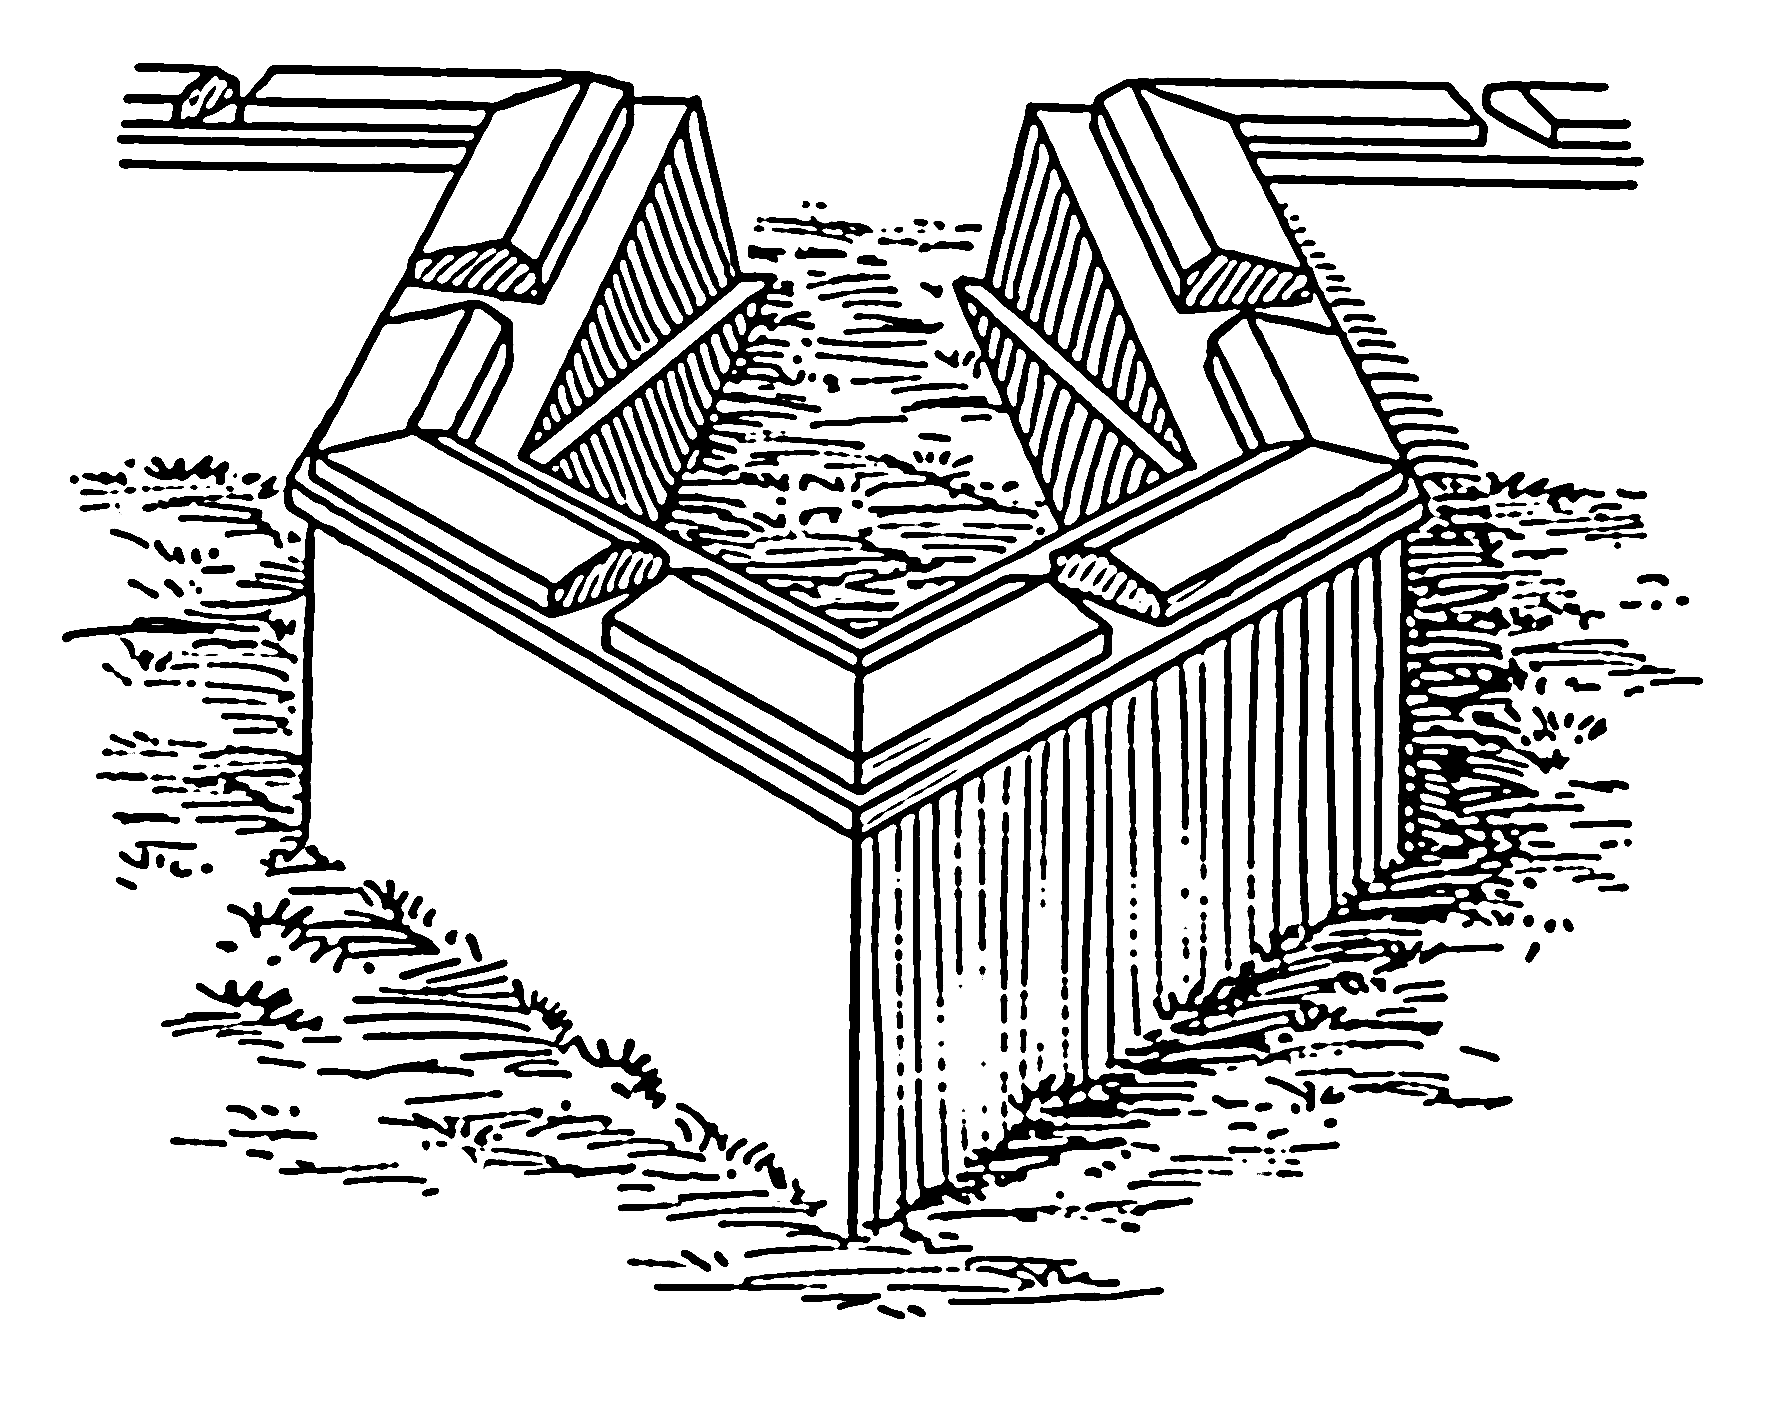 Bastion clipart clip art black and white File:Bastion (PSF).png - Wikimedia Commons clip art black and white